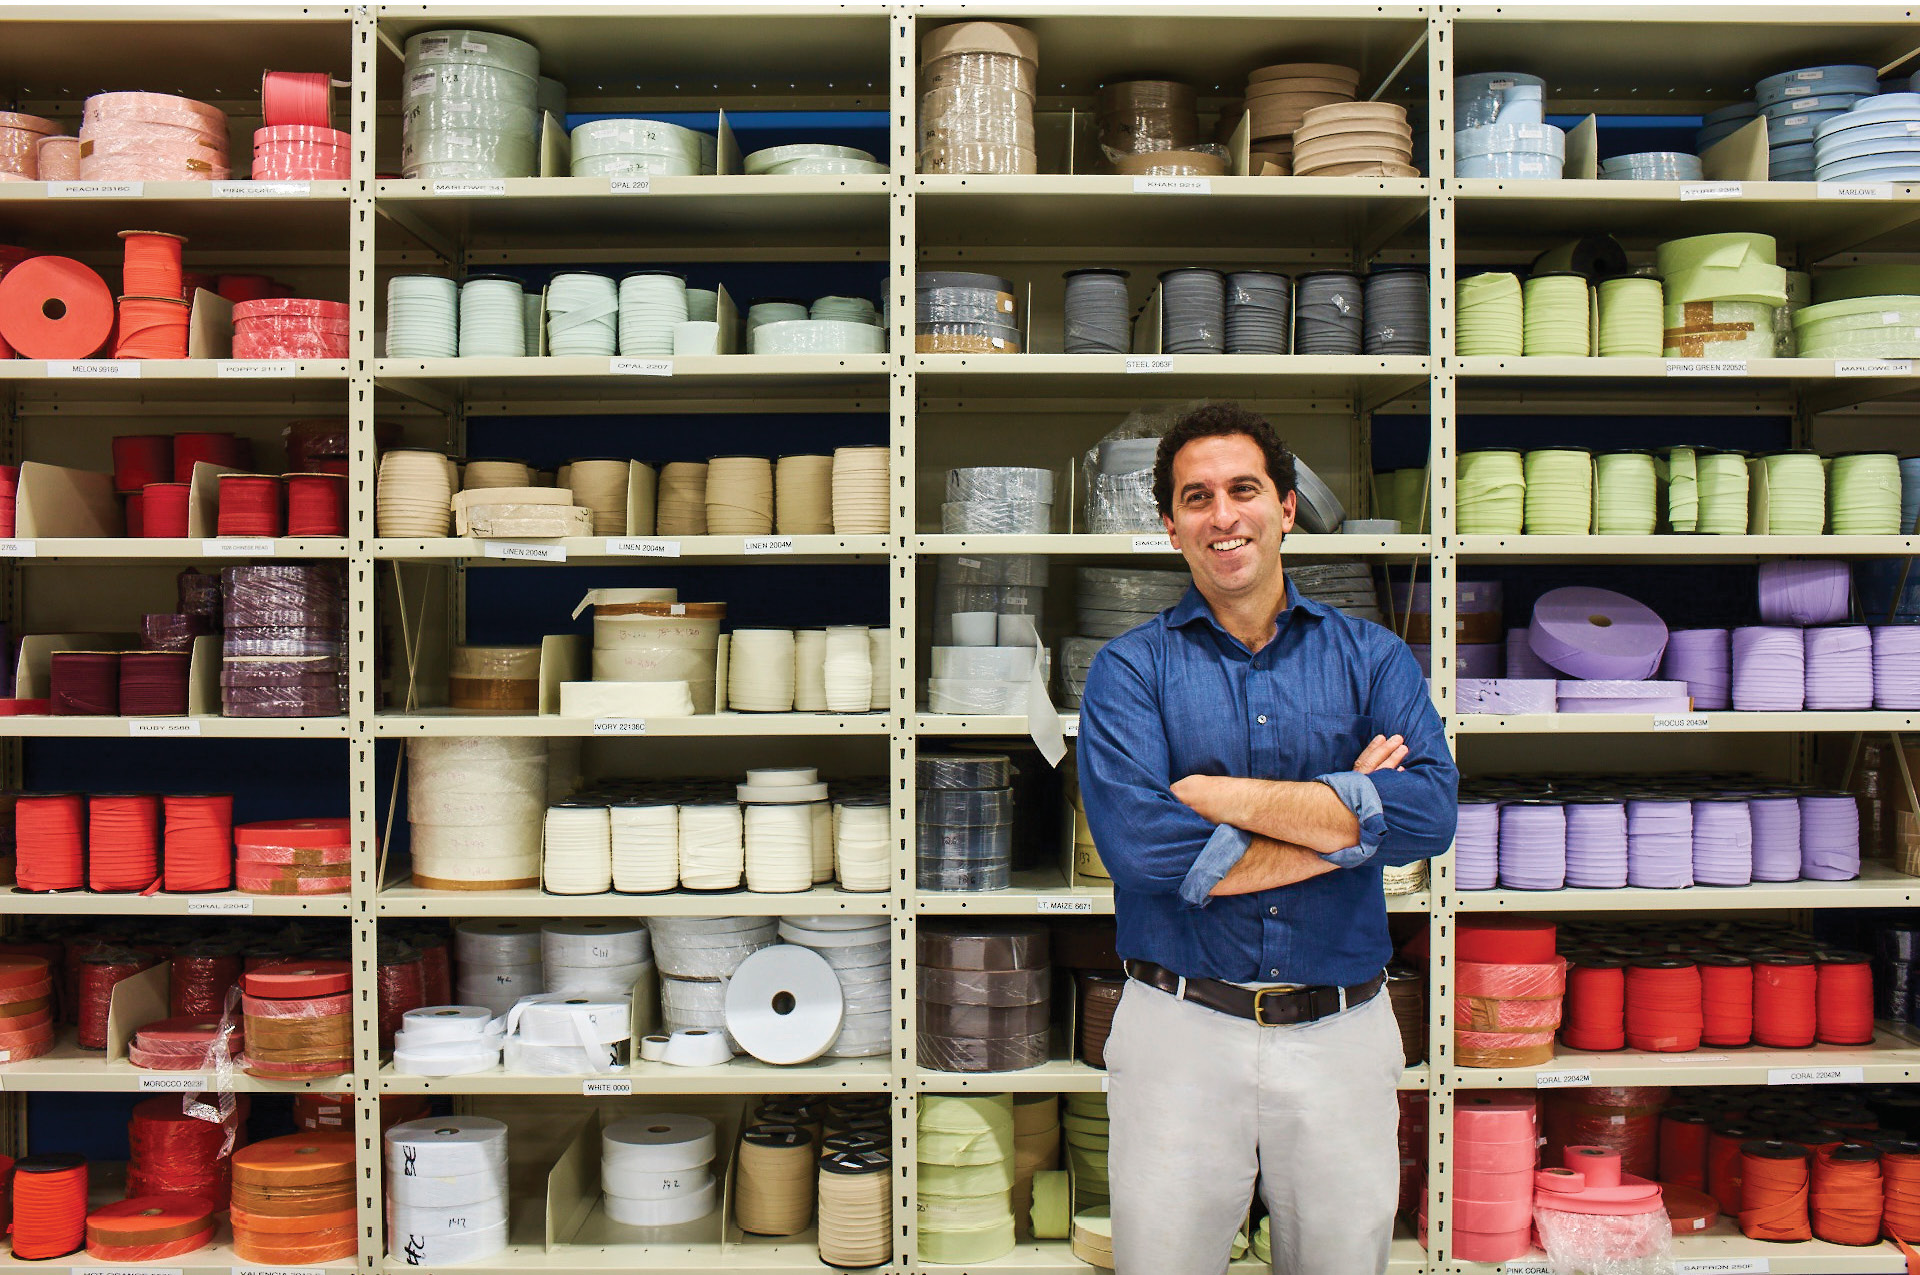 George Matouk is CEO of John Matouk & Co. Inc., a third-generation, family-owned luxury linens company in Massachusetts that is successfully bucking the trend of overseas production and putting its employees first. (JOE SCHMELZER FOR ONE KINGS LANE)